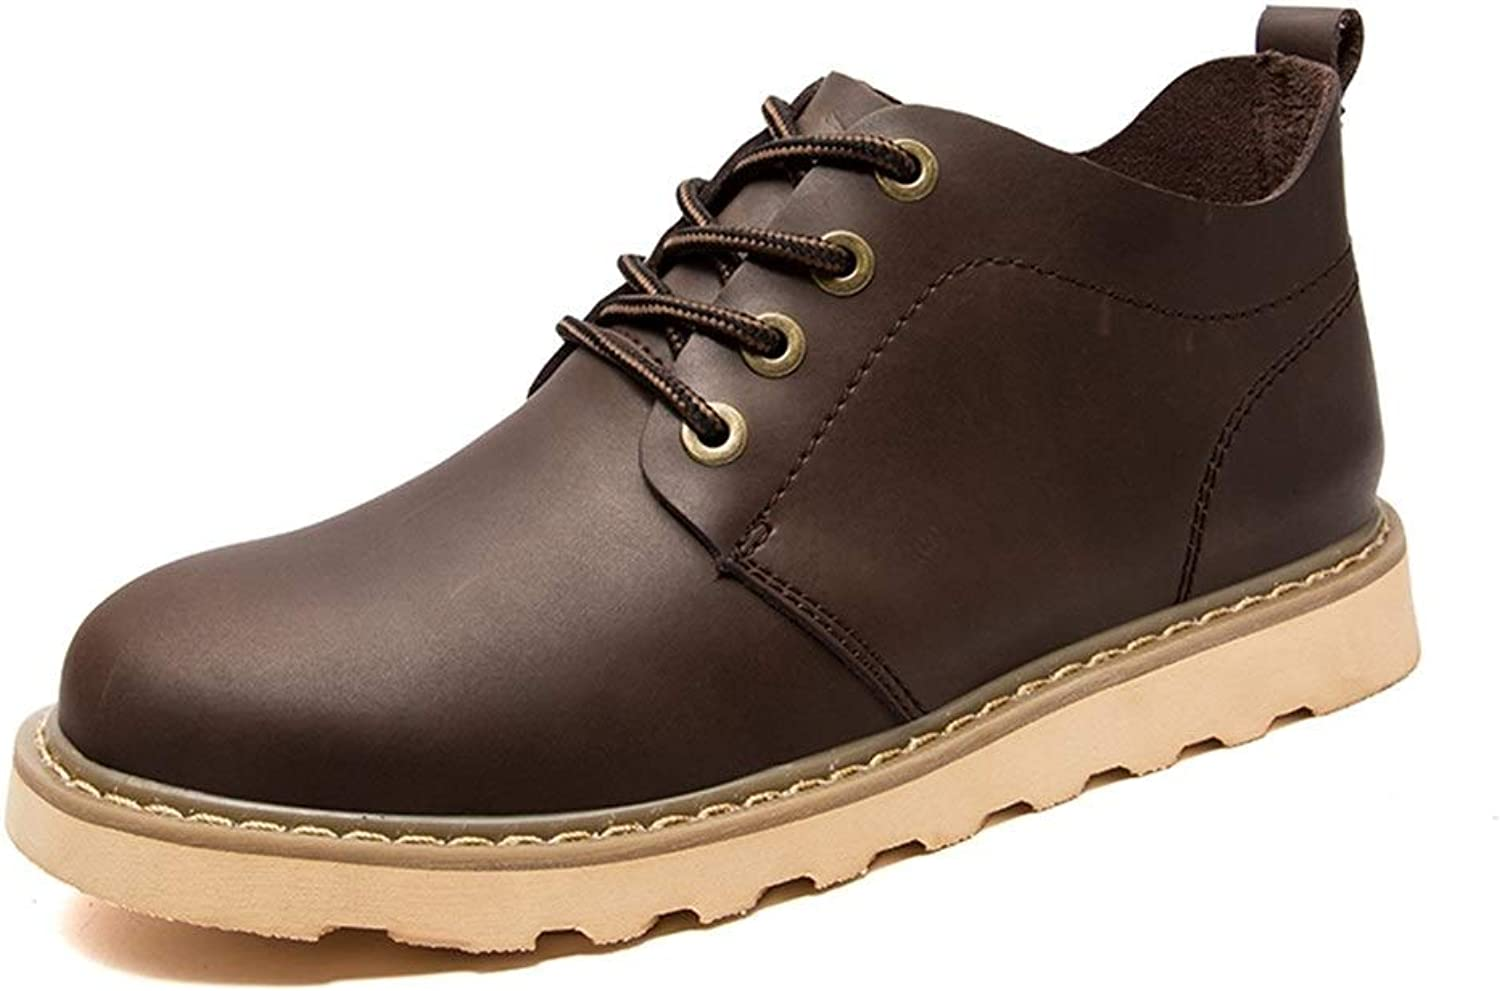 Easy Go Shopping Oxford shoes For Men Formal shoes Lace Up Horse Skin Rubber Outsole shoes Cricket shoes (color   Beeswax color, Size   5 UK)